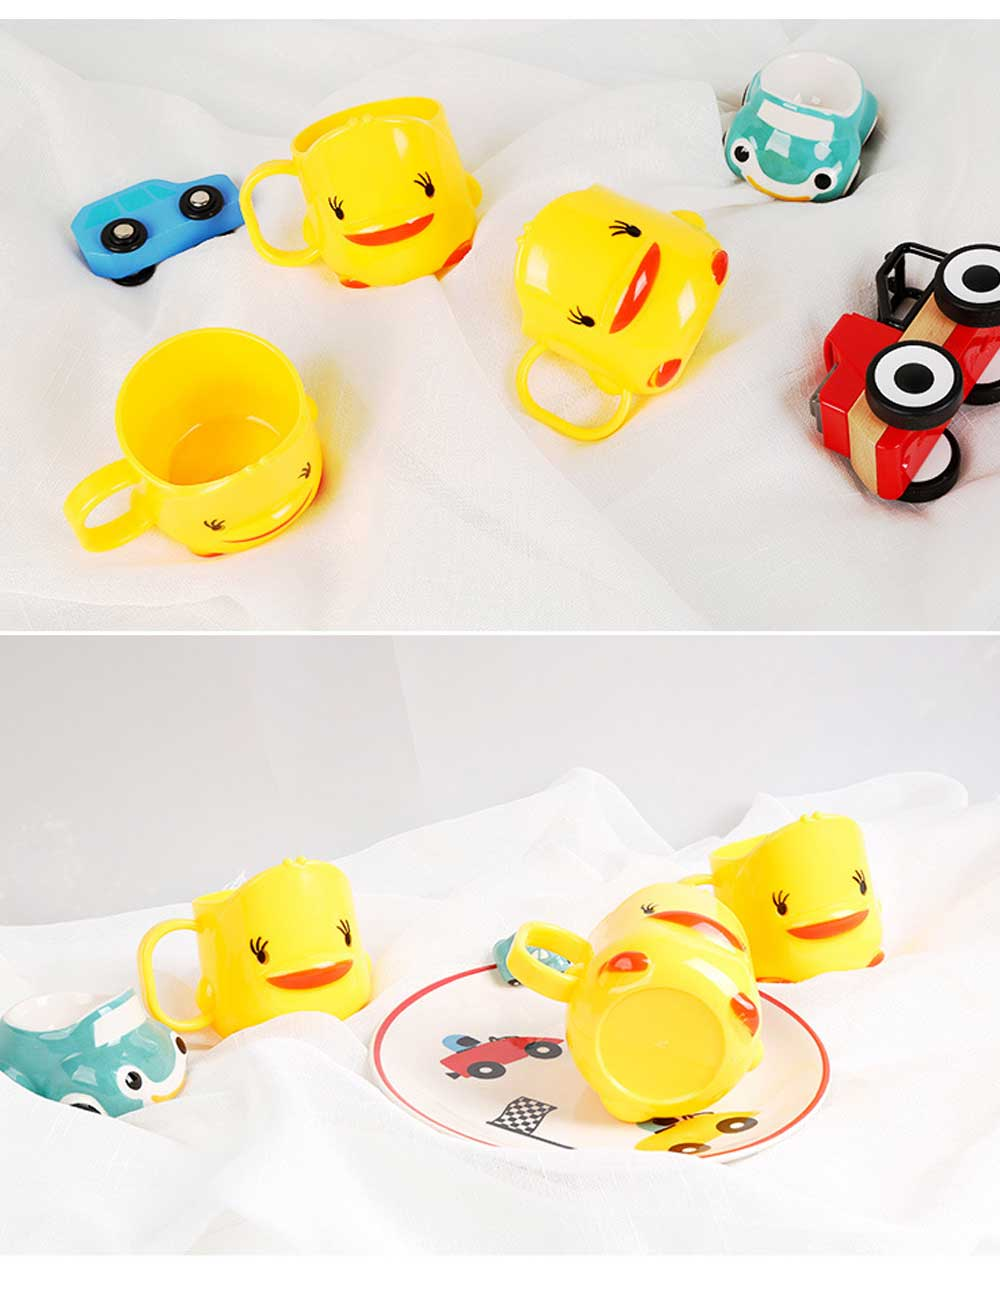 Cartoon Toothbrush Tumbler for Kids Children, Green PP Toothbrush Cup with Handle, Duck Designed Dental Care Mug 6